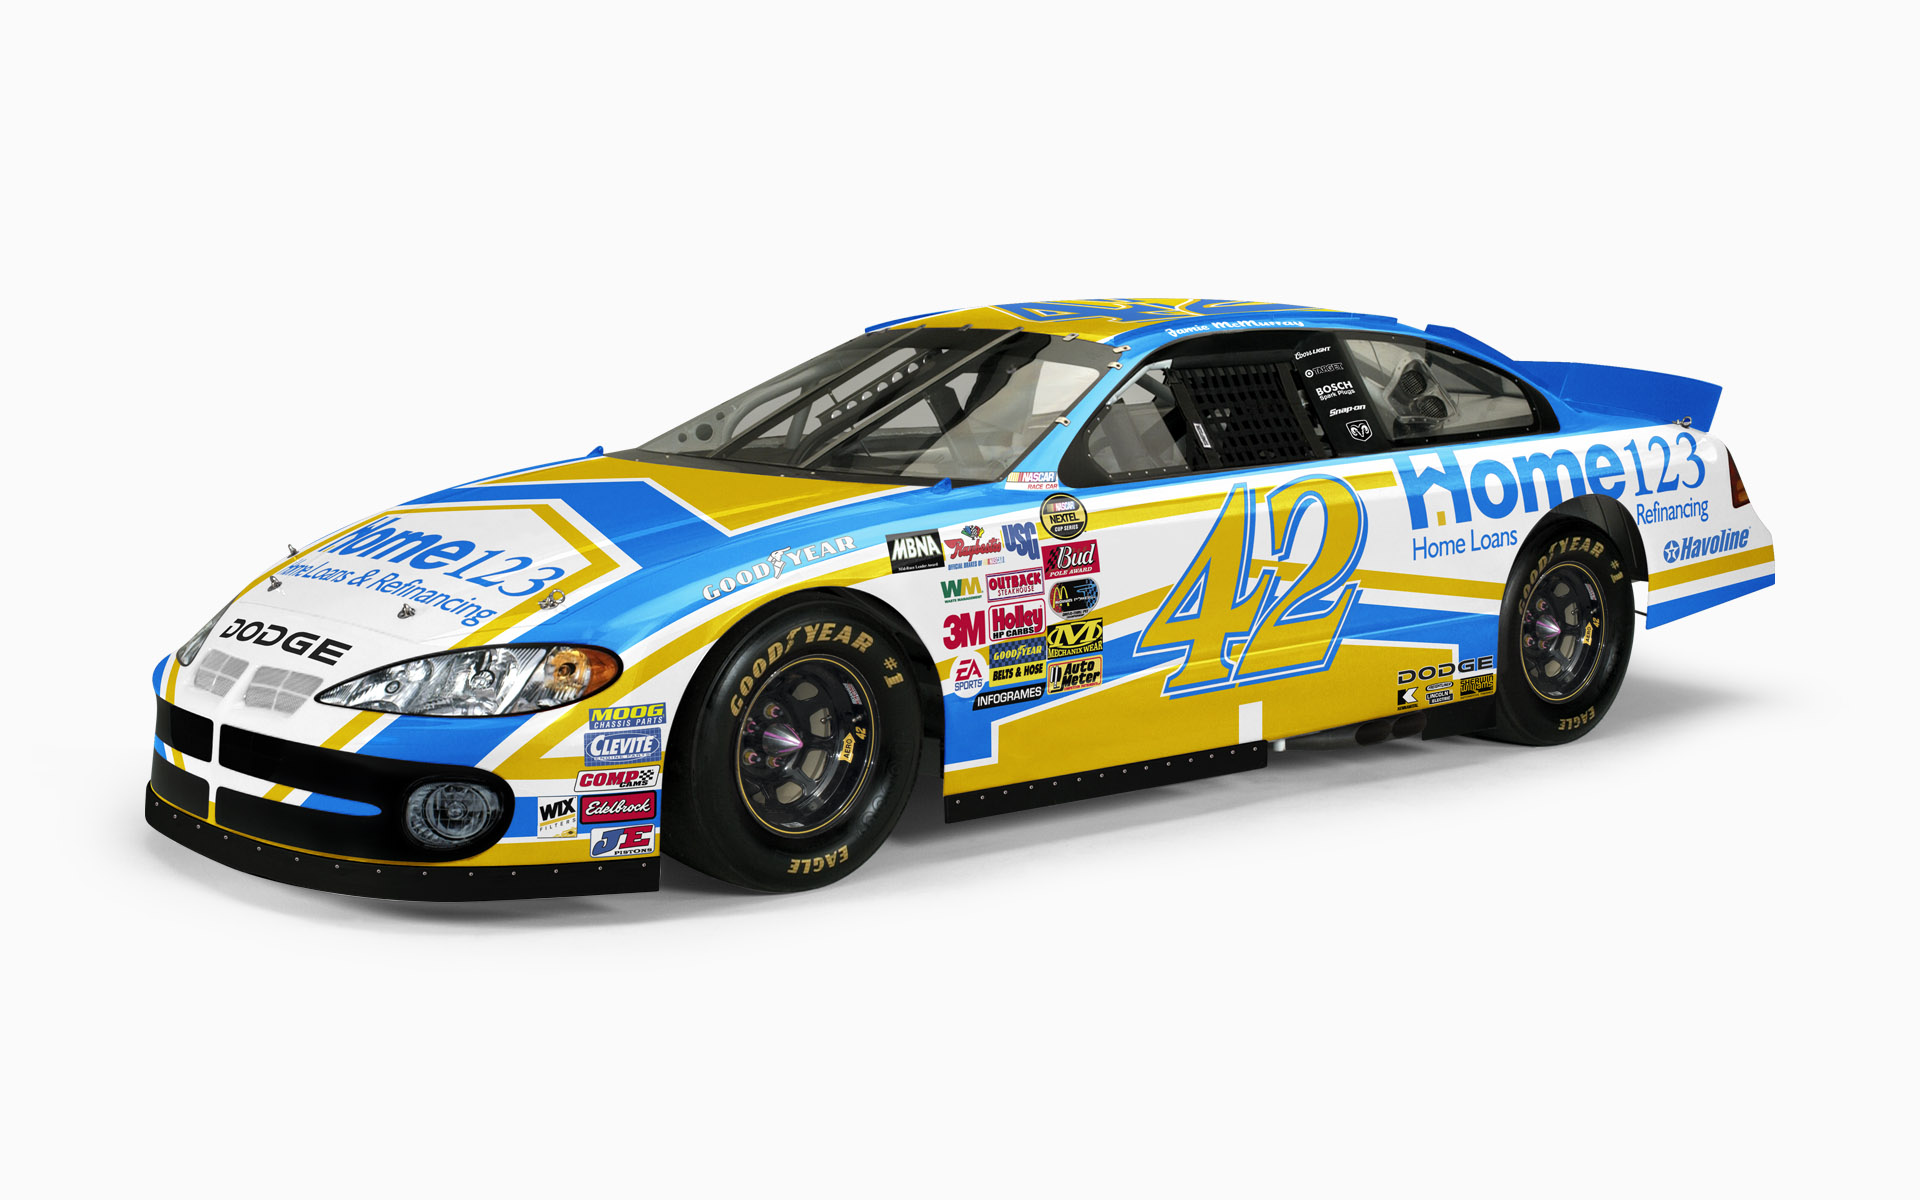 2005 Chip Ganassi Racing Home 123 Dodge Intrepid NASCAR Nextel Cup Livery Visualization